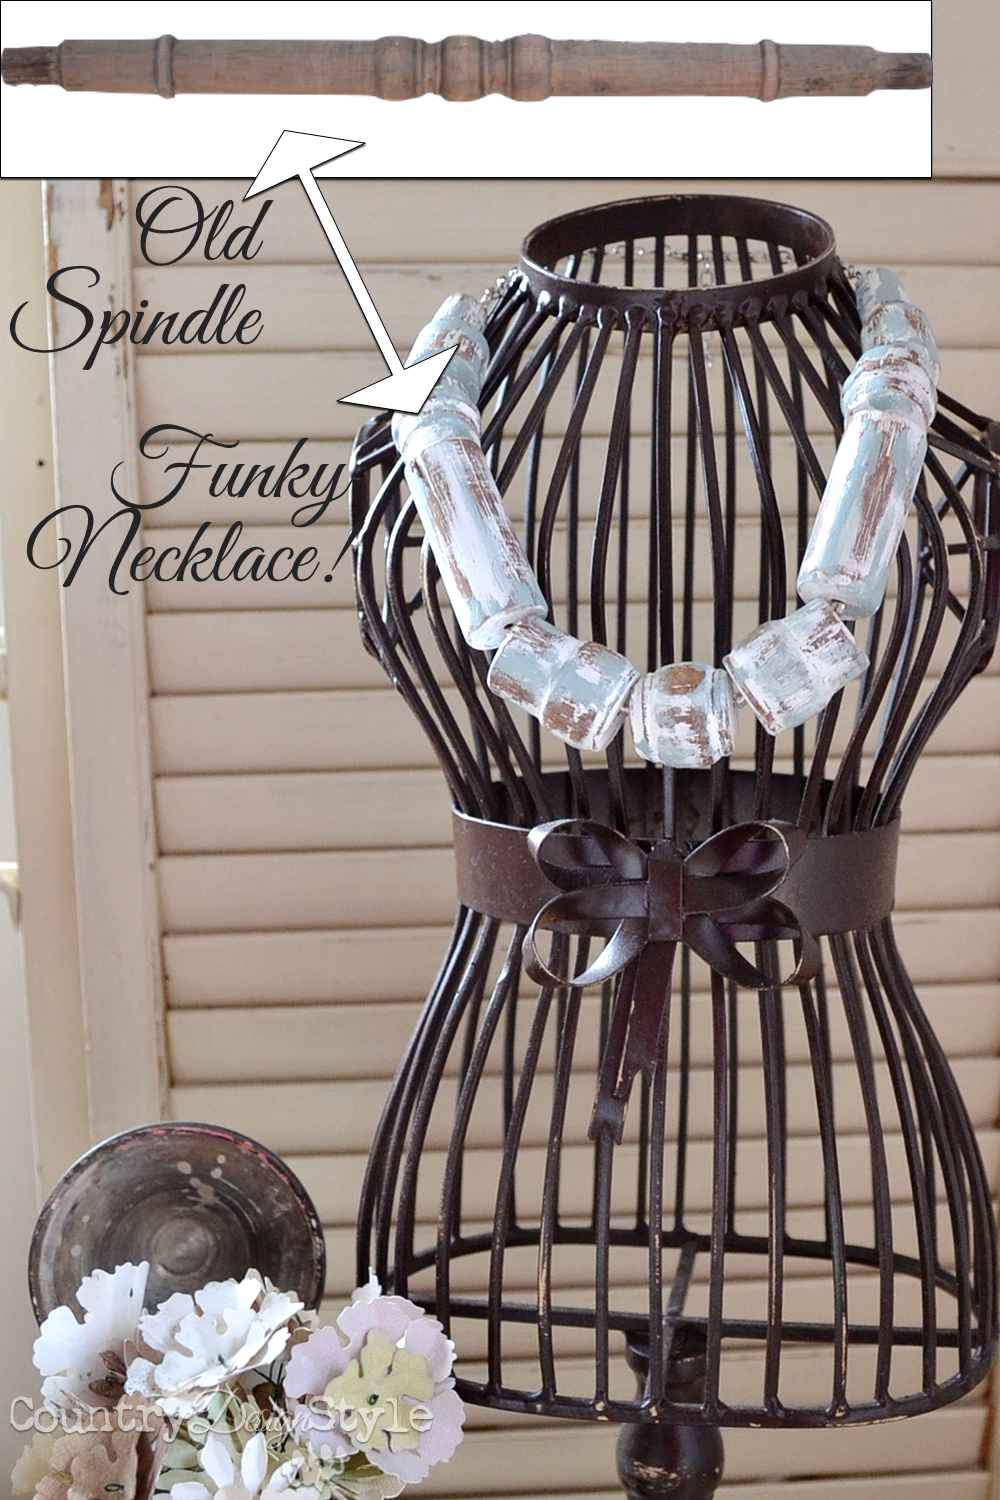 old-spindle-funky-necklace-country-design-style-pn